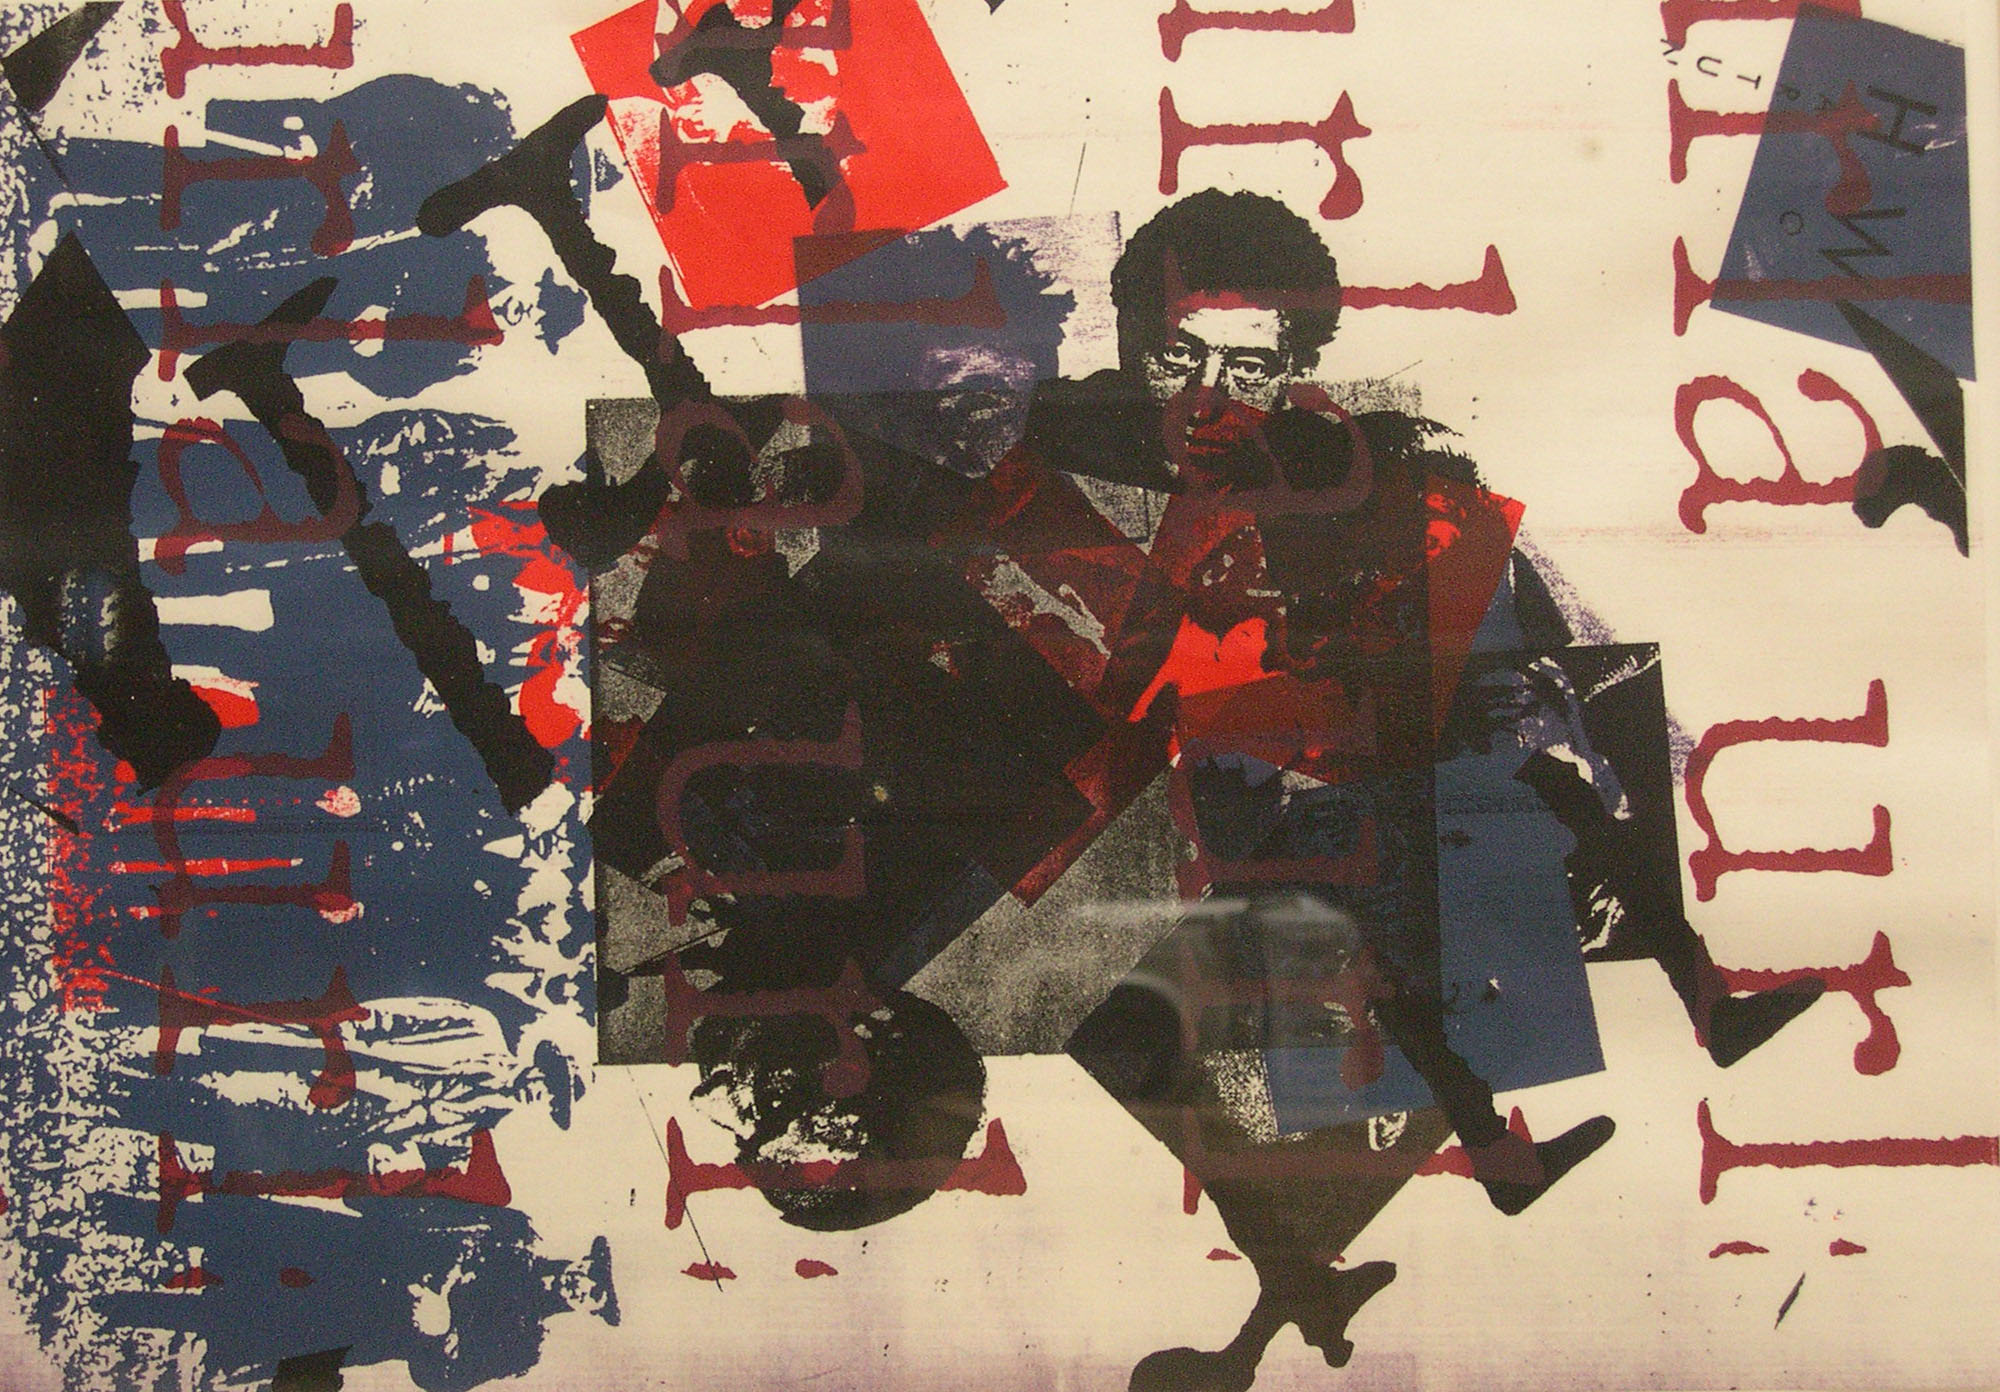 Luca Pancrazzi, 99 A4, 1998, mixed media on paper, 21×29 cm